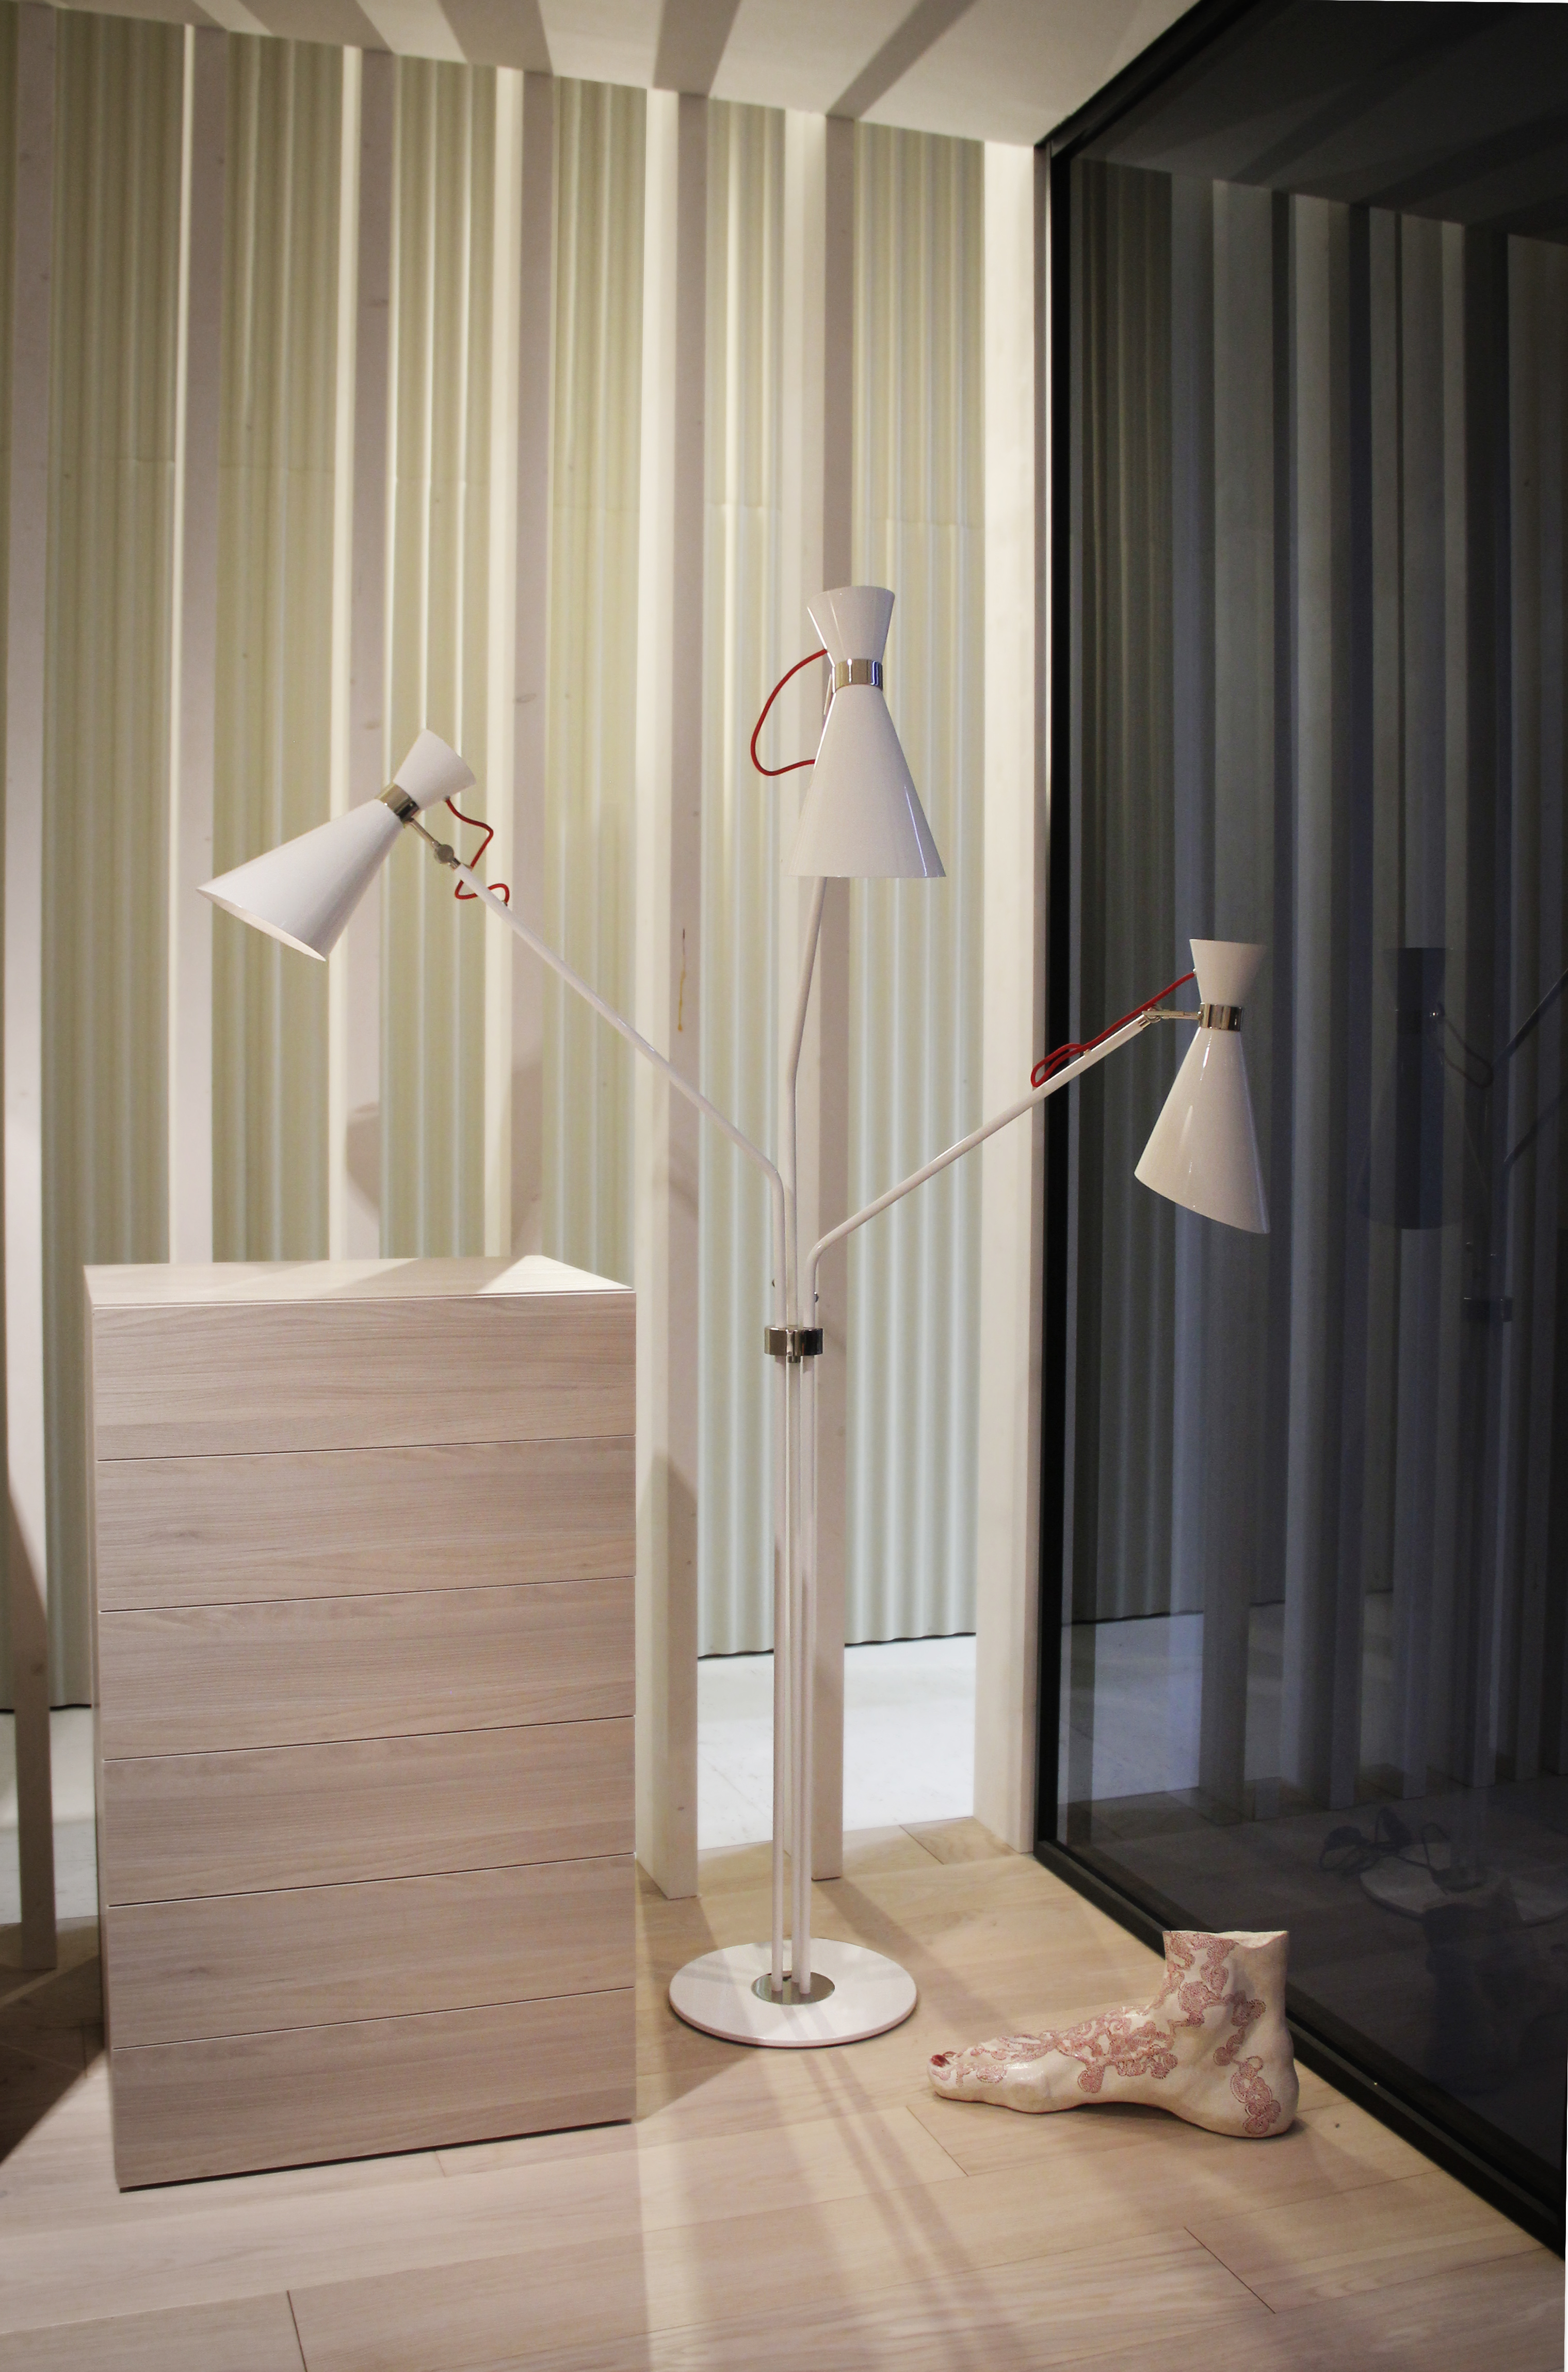 4 Modern Floor Lamps To Be Seen At 100% Design! modern floor lamps 4 Modern Floor Lamps To Be Seen At 100% Design! 4 Modern Floor Lamps To Be Seen At 100 Design 3